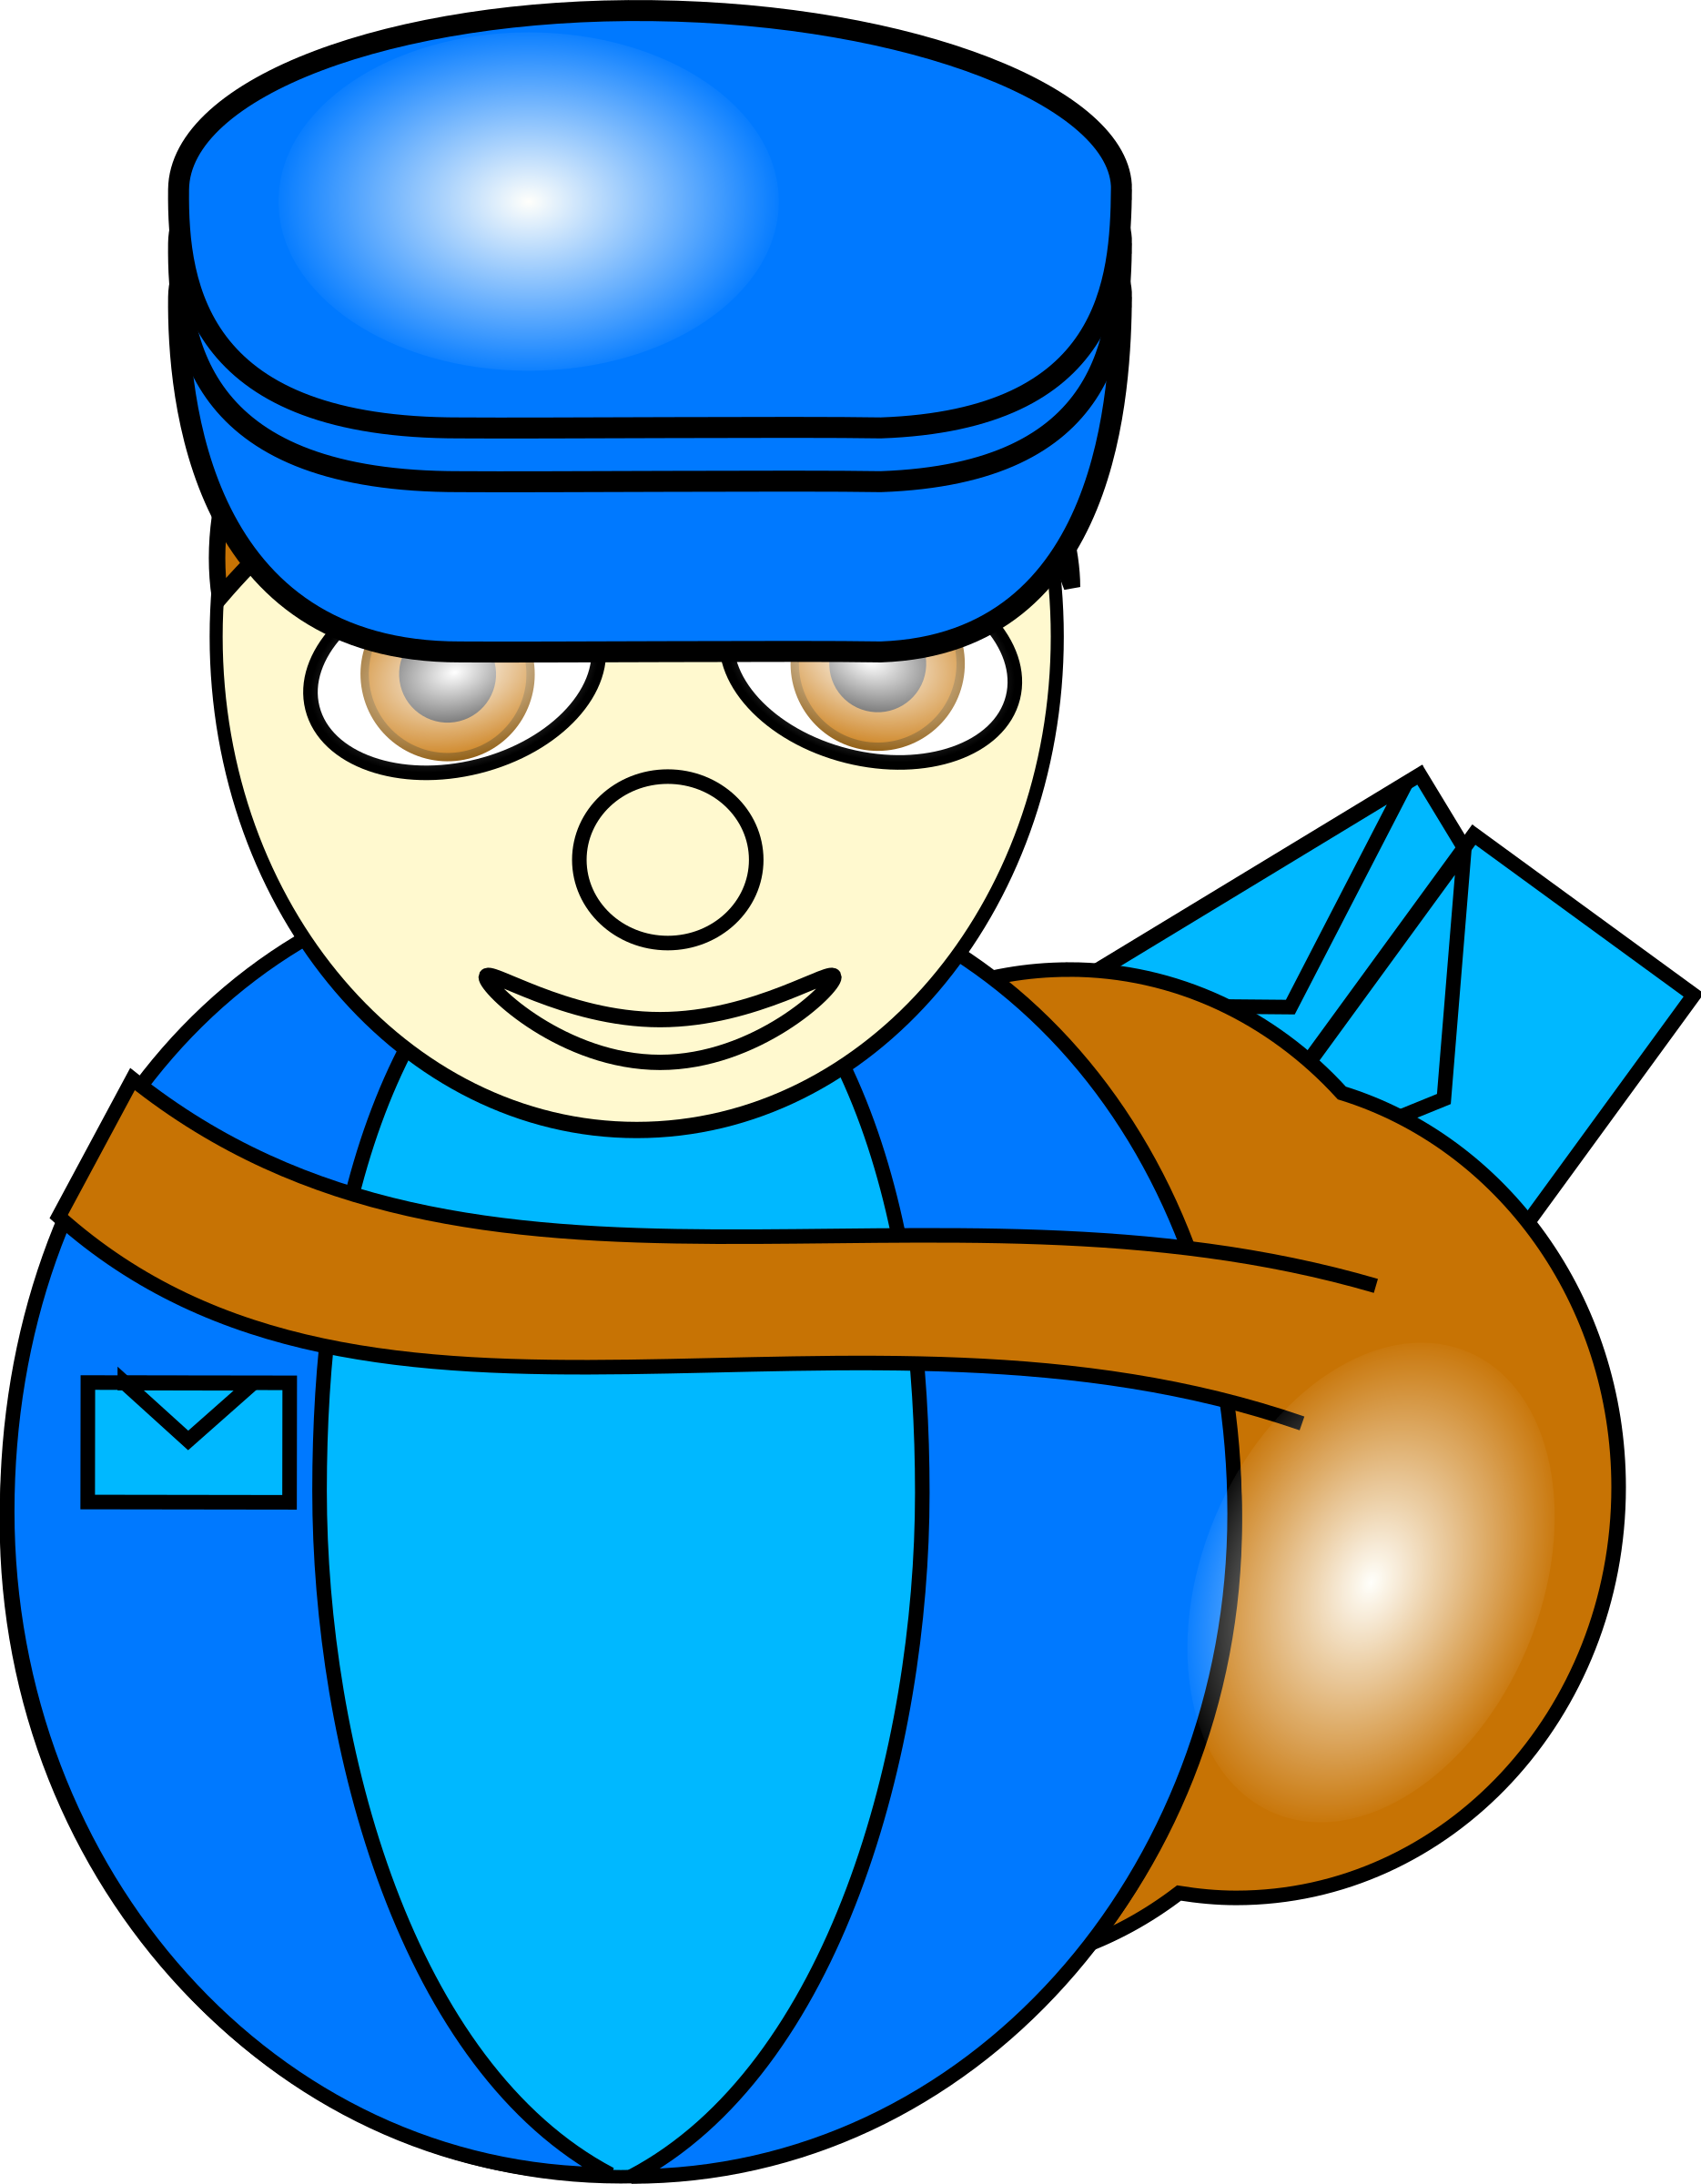 Postman by TomBrough